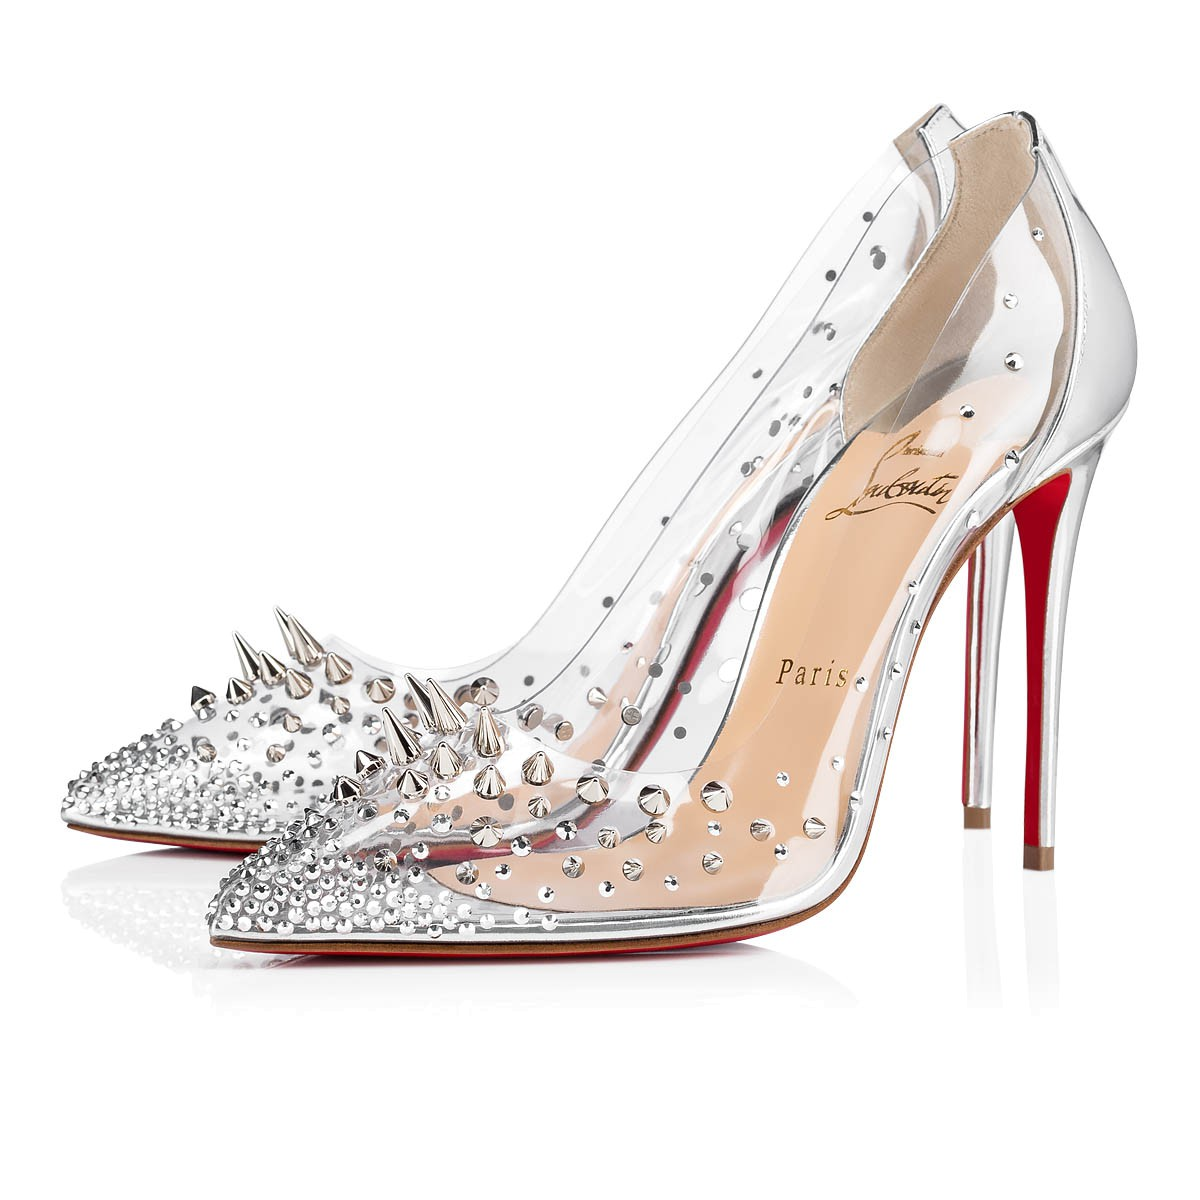 huge discount acca2 efefa GROTIKA 100 Silver PVC - Women Shoes - Christian Louboutin